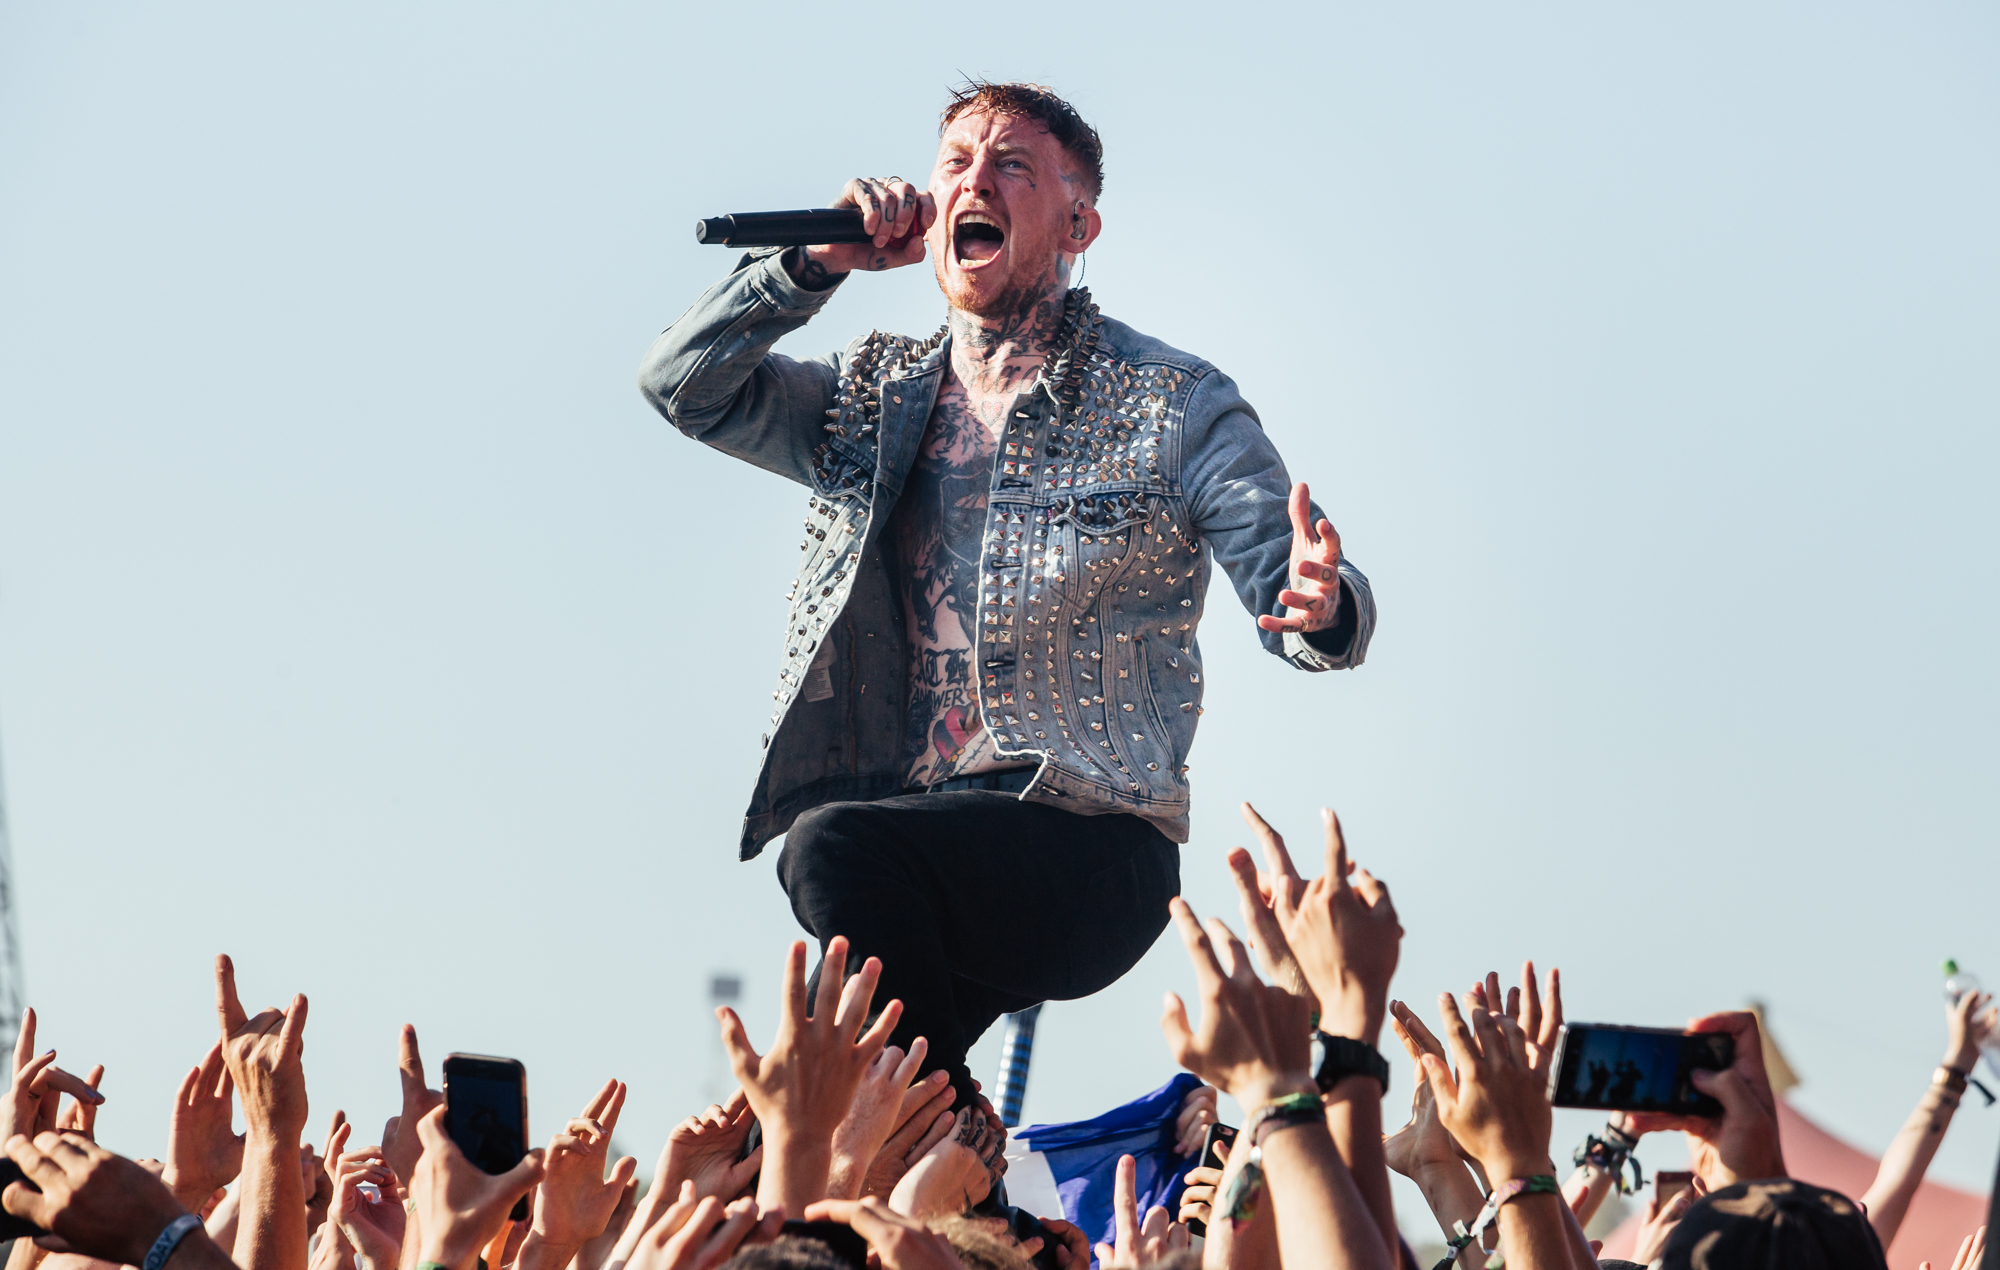 """Frank Carter: """"Rock gigs have been dominated by men for years – all bands need to work to empower women"""""""